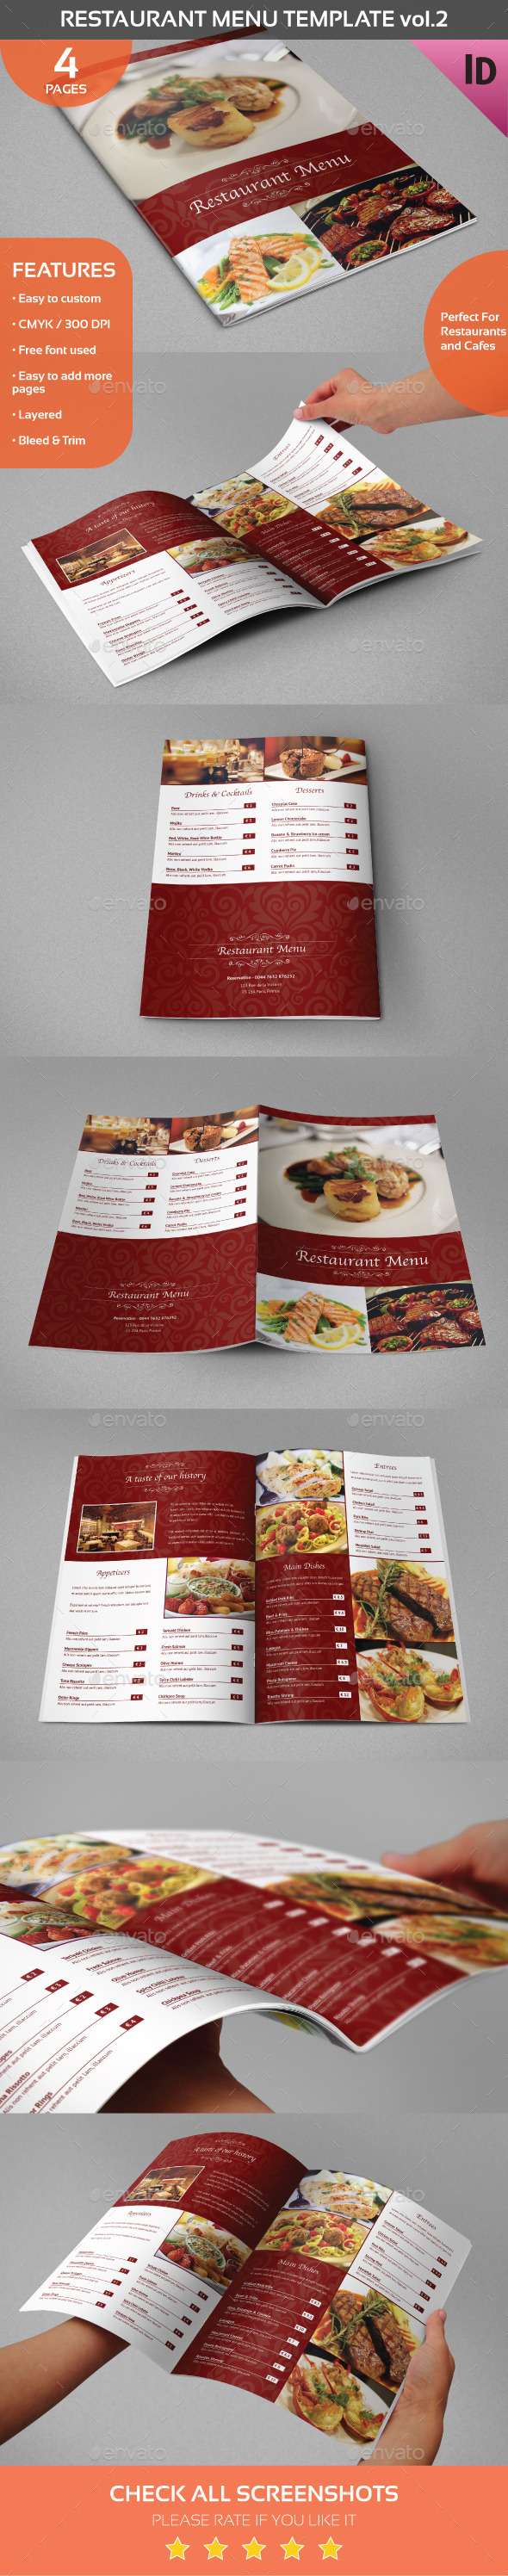 Restaurant Menu Template vol.2 - Food Menus Print Templates